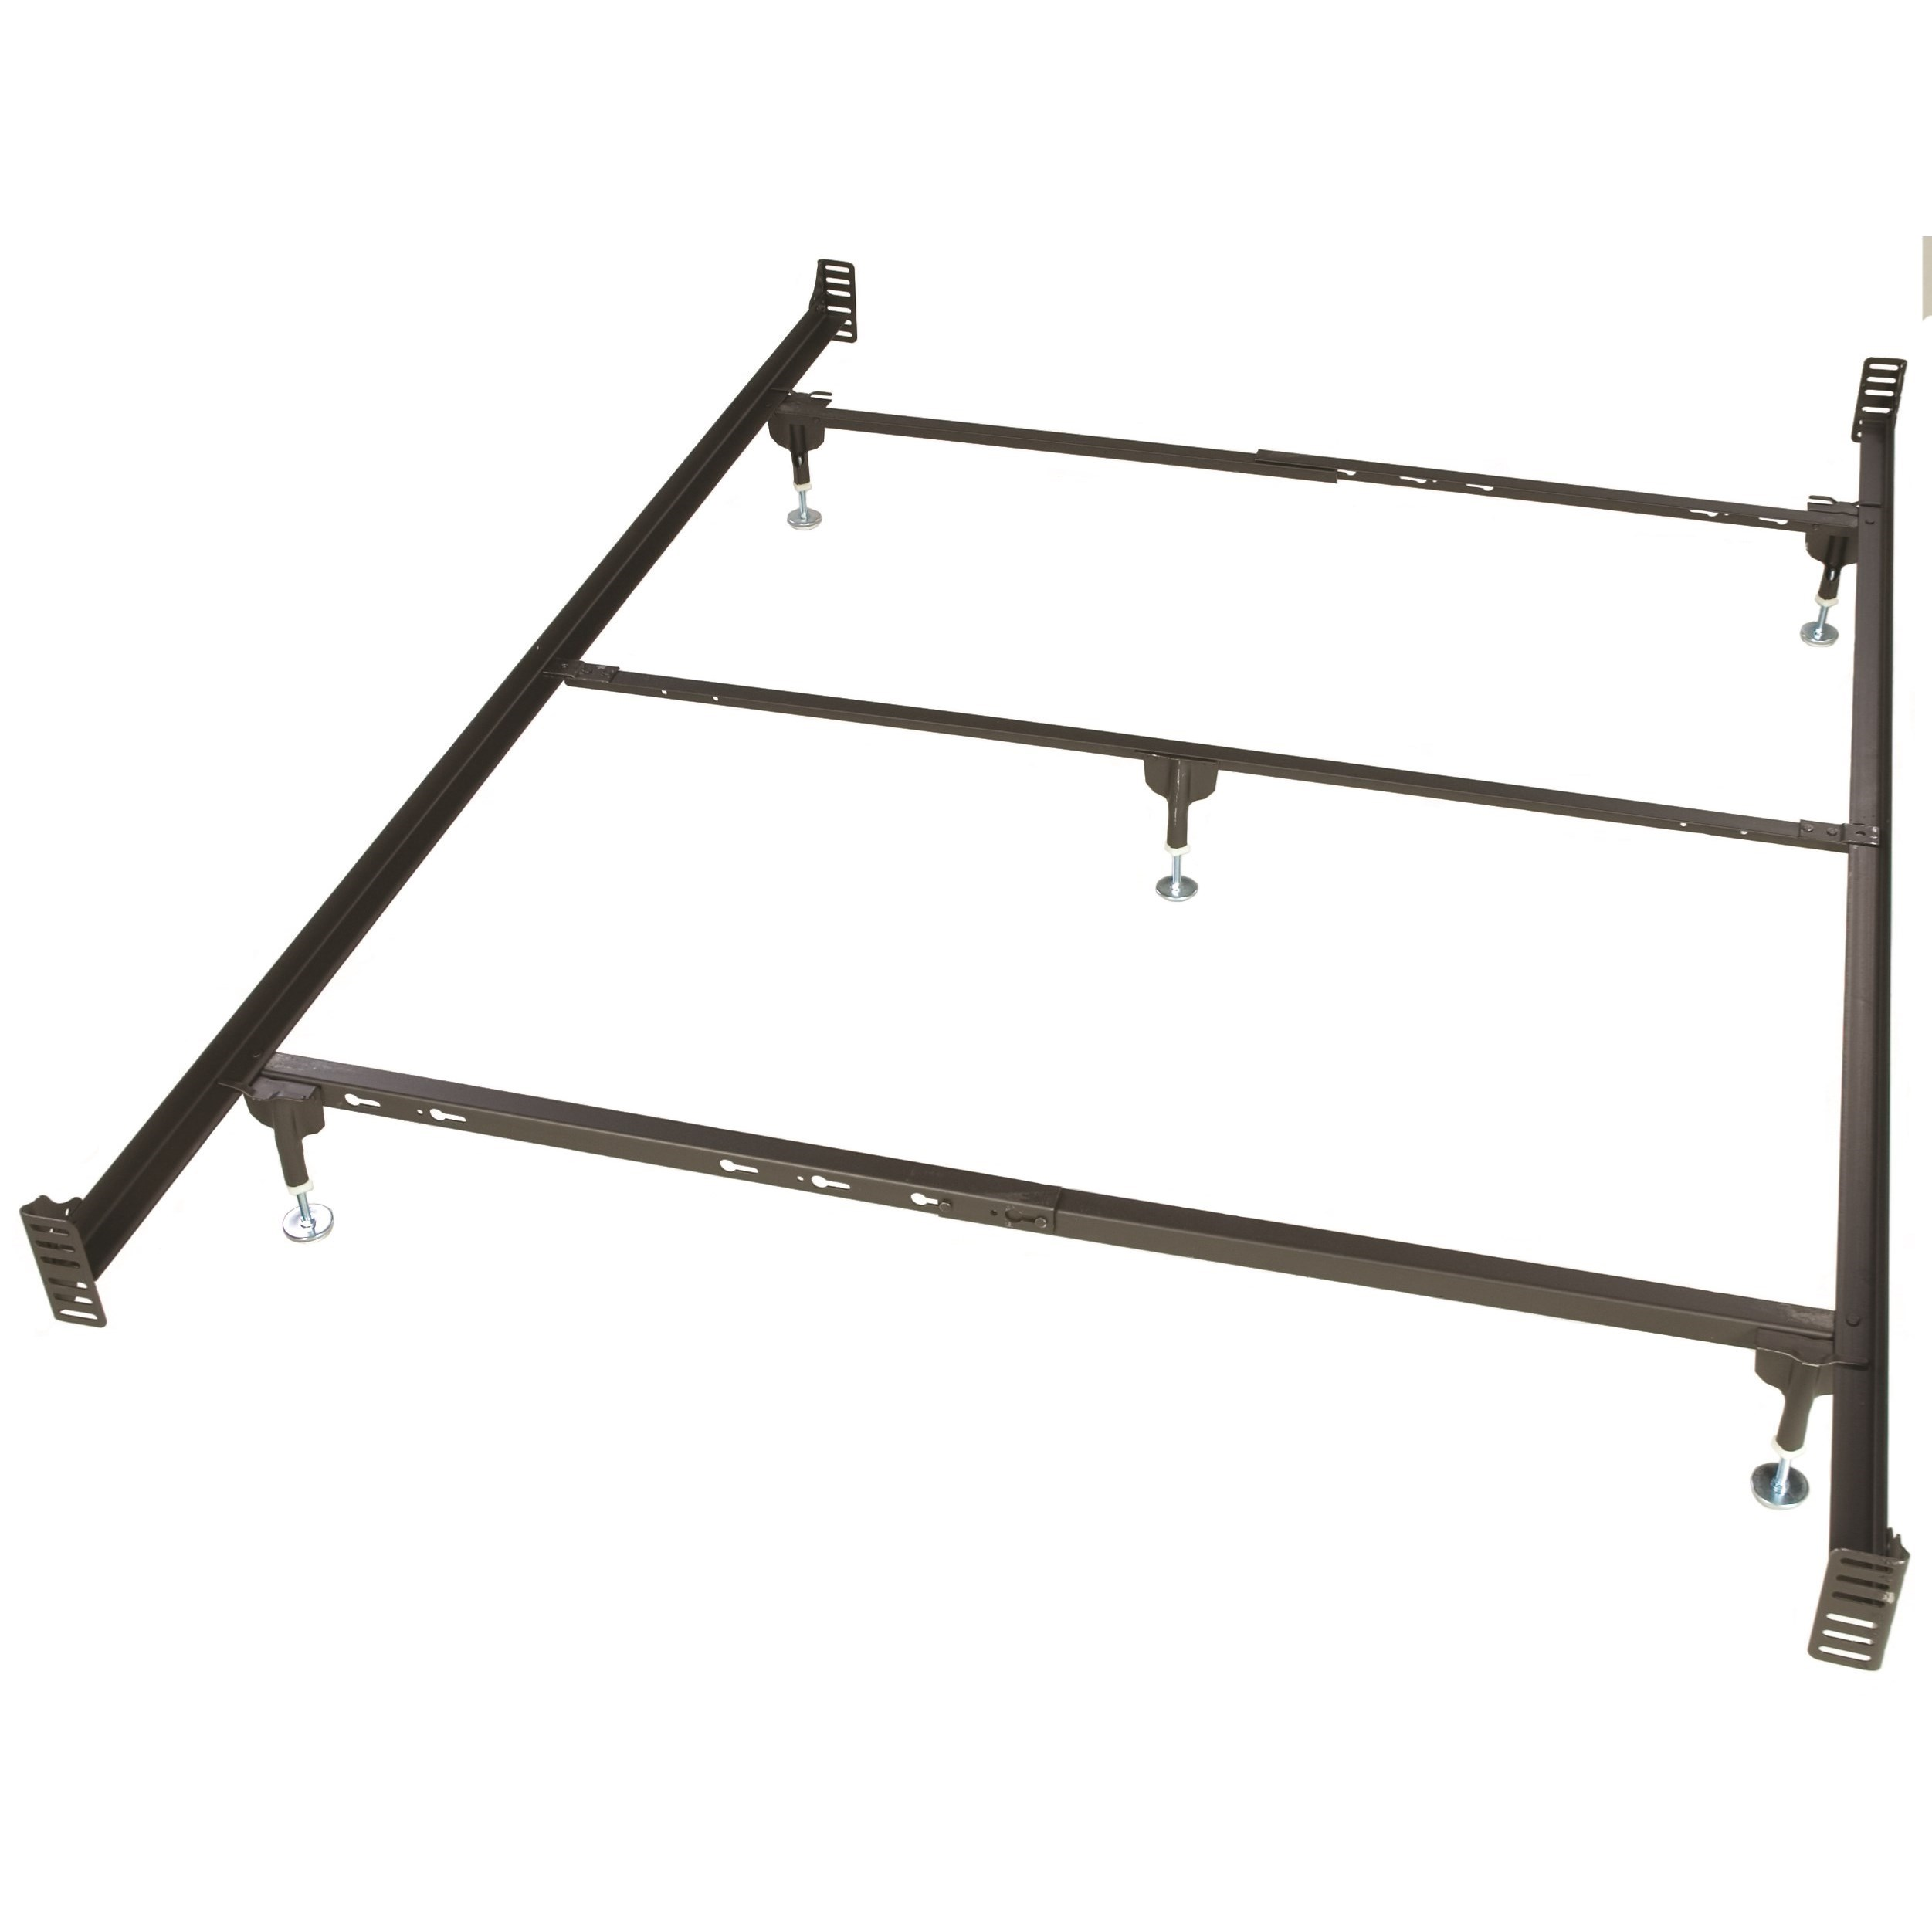 Hdbd FTBD Frames Twin/Full/Qn 2 Ended Bed Frame by Glideaway at Johnny Janosik